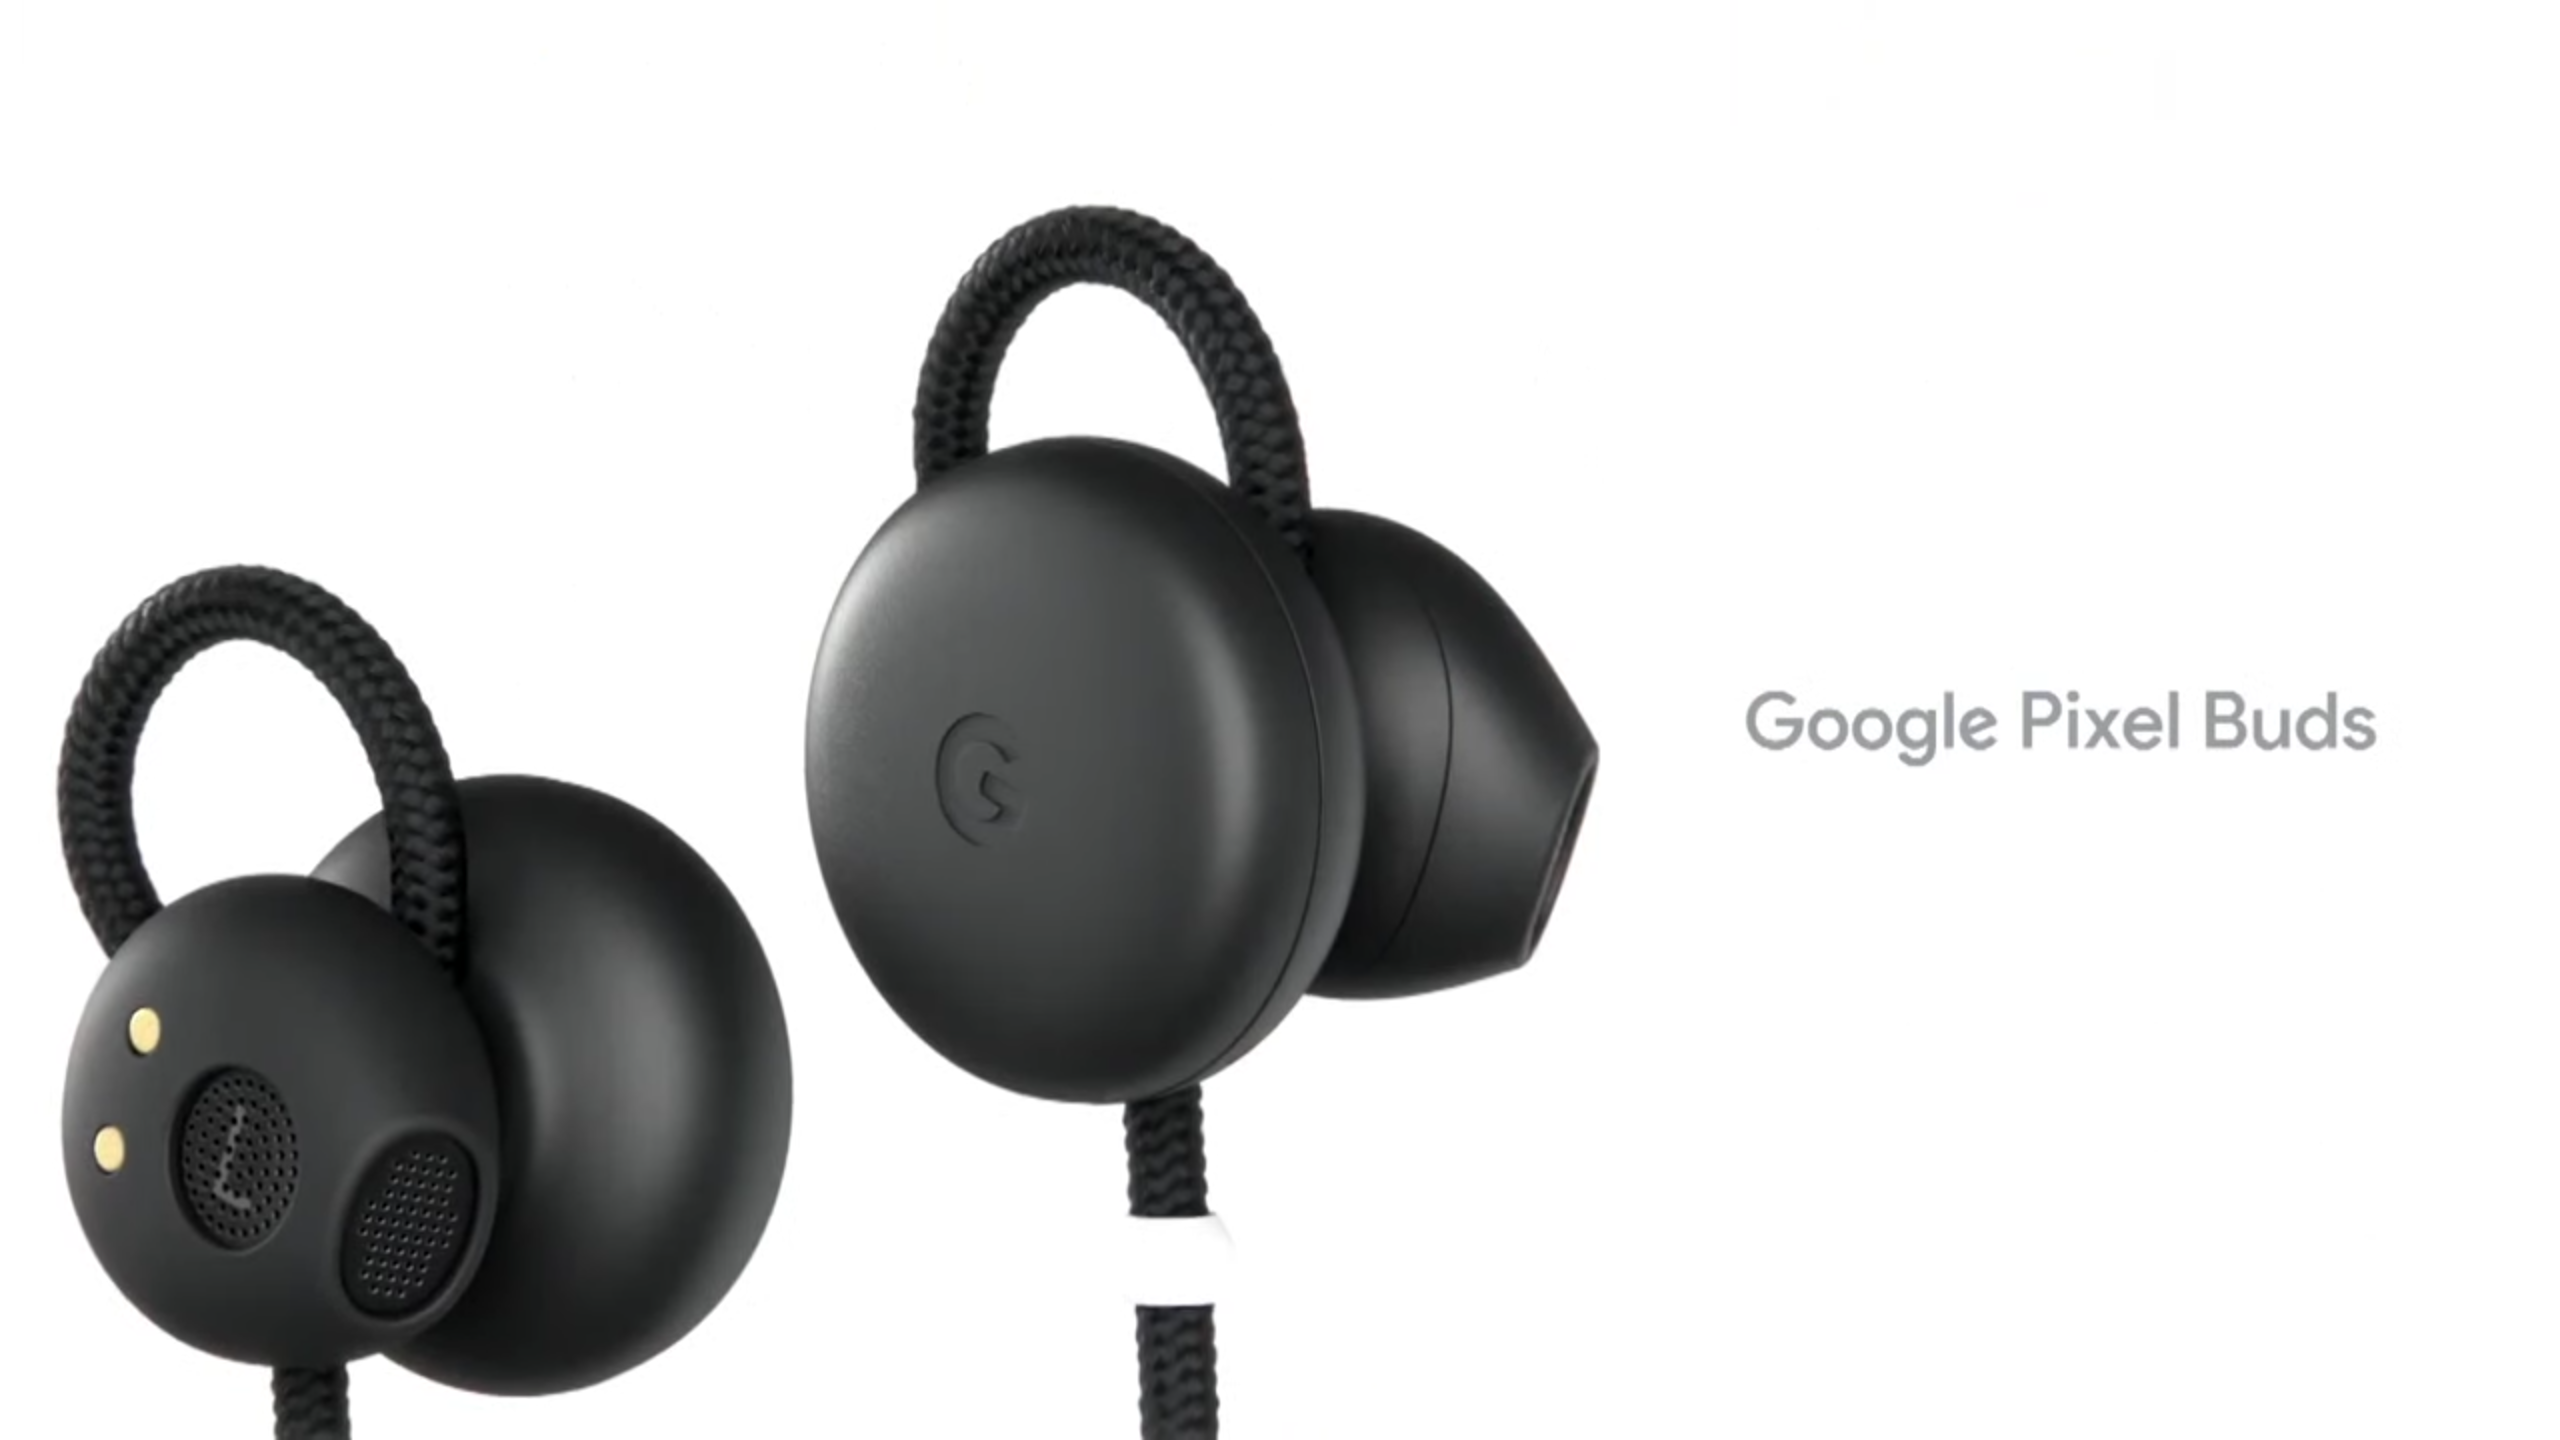 English To Italian Translator Google: Google's $159 Pixel Buds Offer Real-time Translation